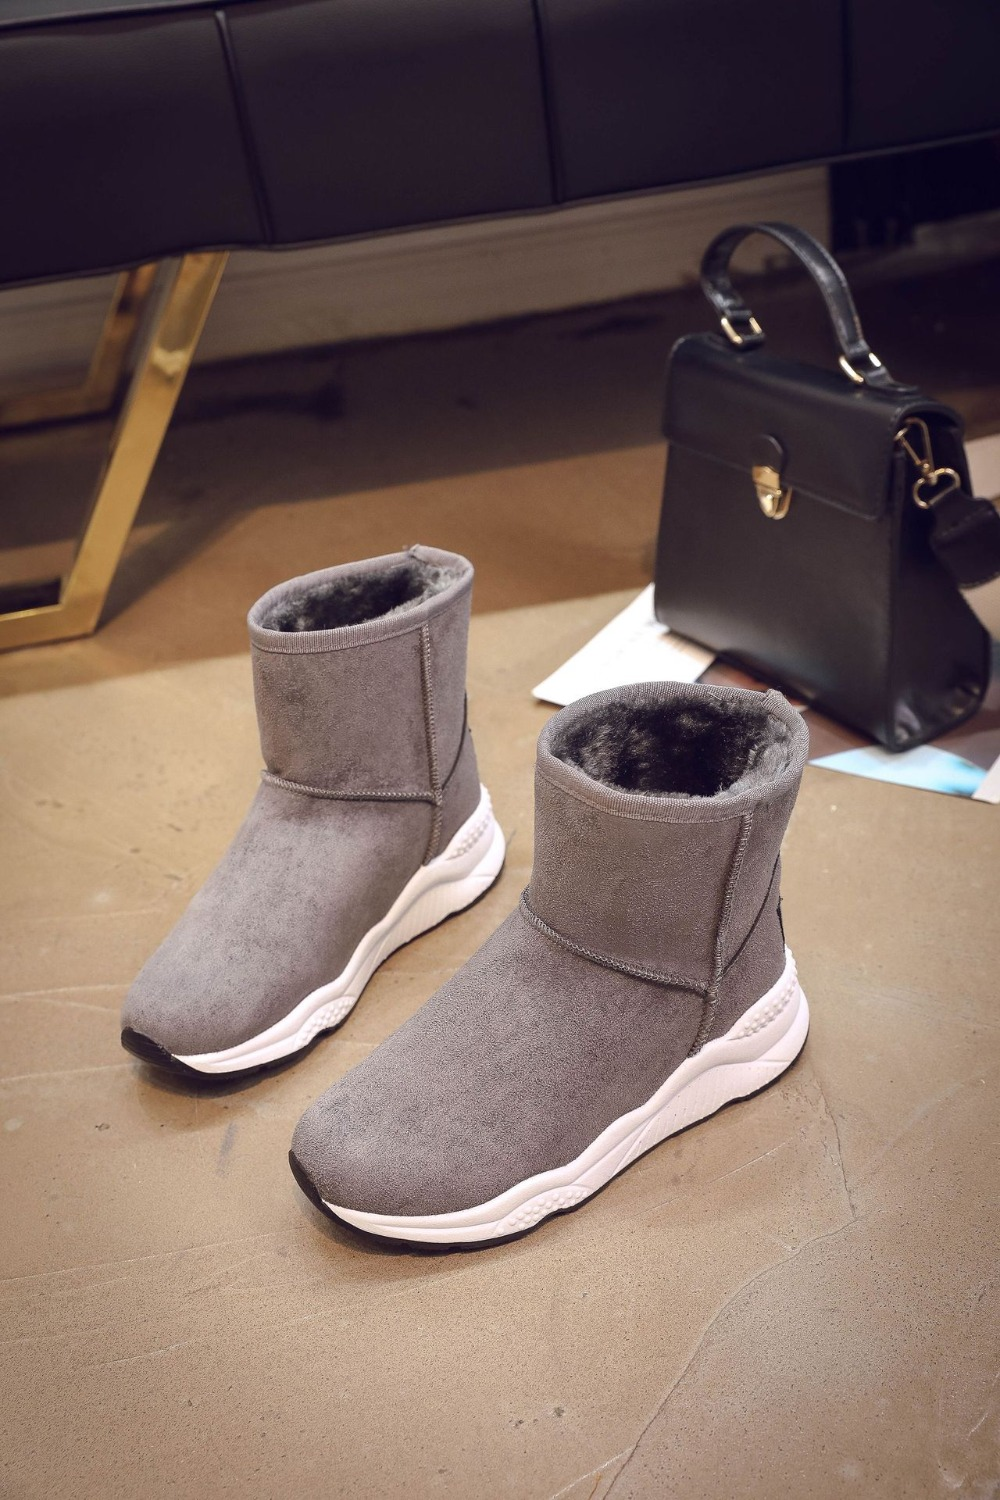 Winter Snow Boots Women Casual Shoes Slip On Warm Plush Women Ankle Boots Flat Heel Sport Ladies Shoes Booties Botas Mujer XZ82 (21)